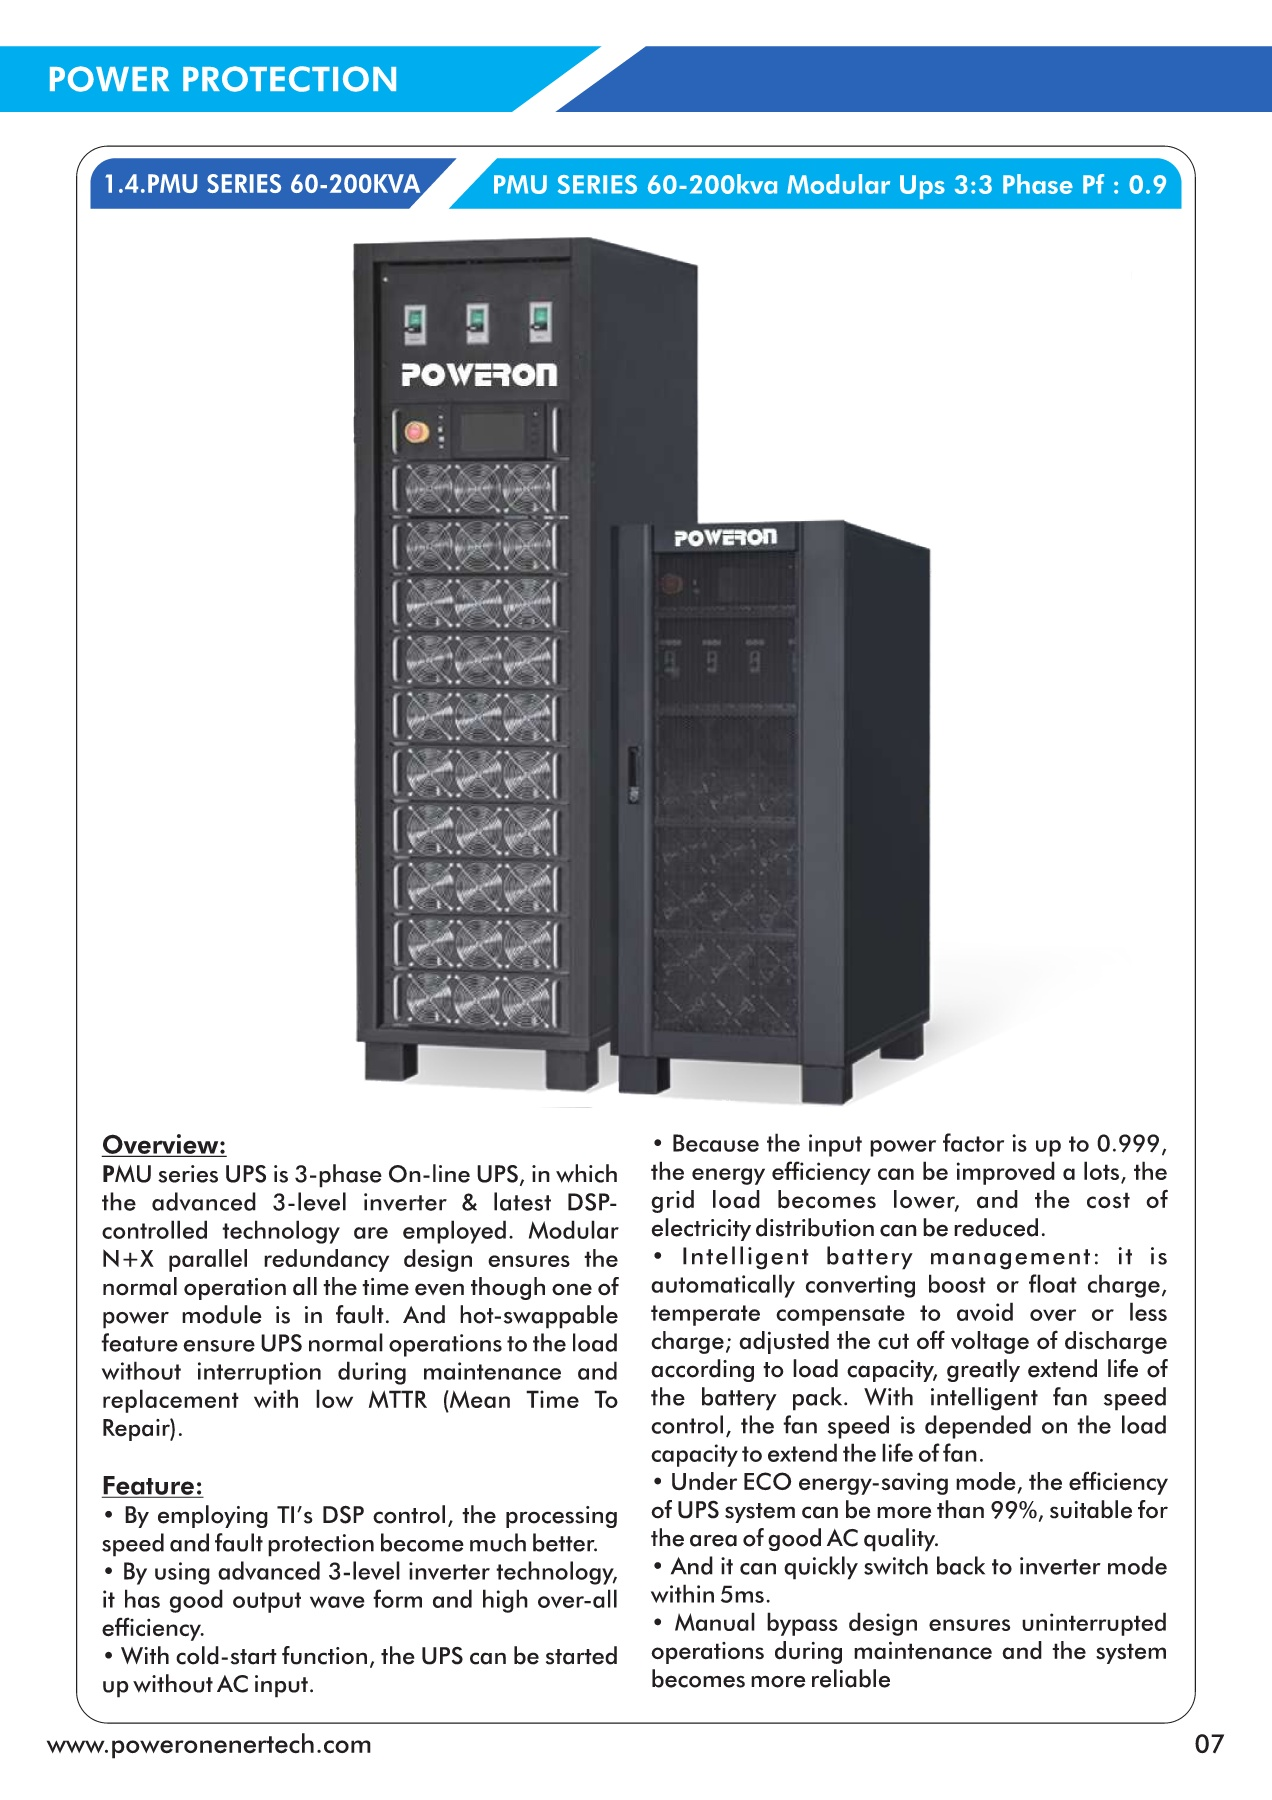 f3375a96518 Poweron Brochure Pages 1 - 50 - Text Version